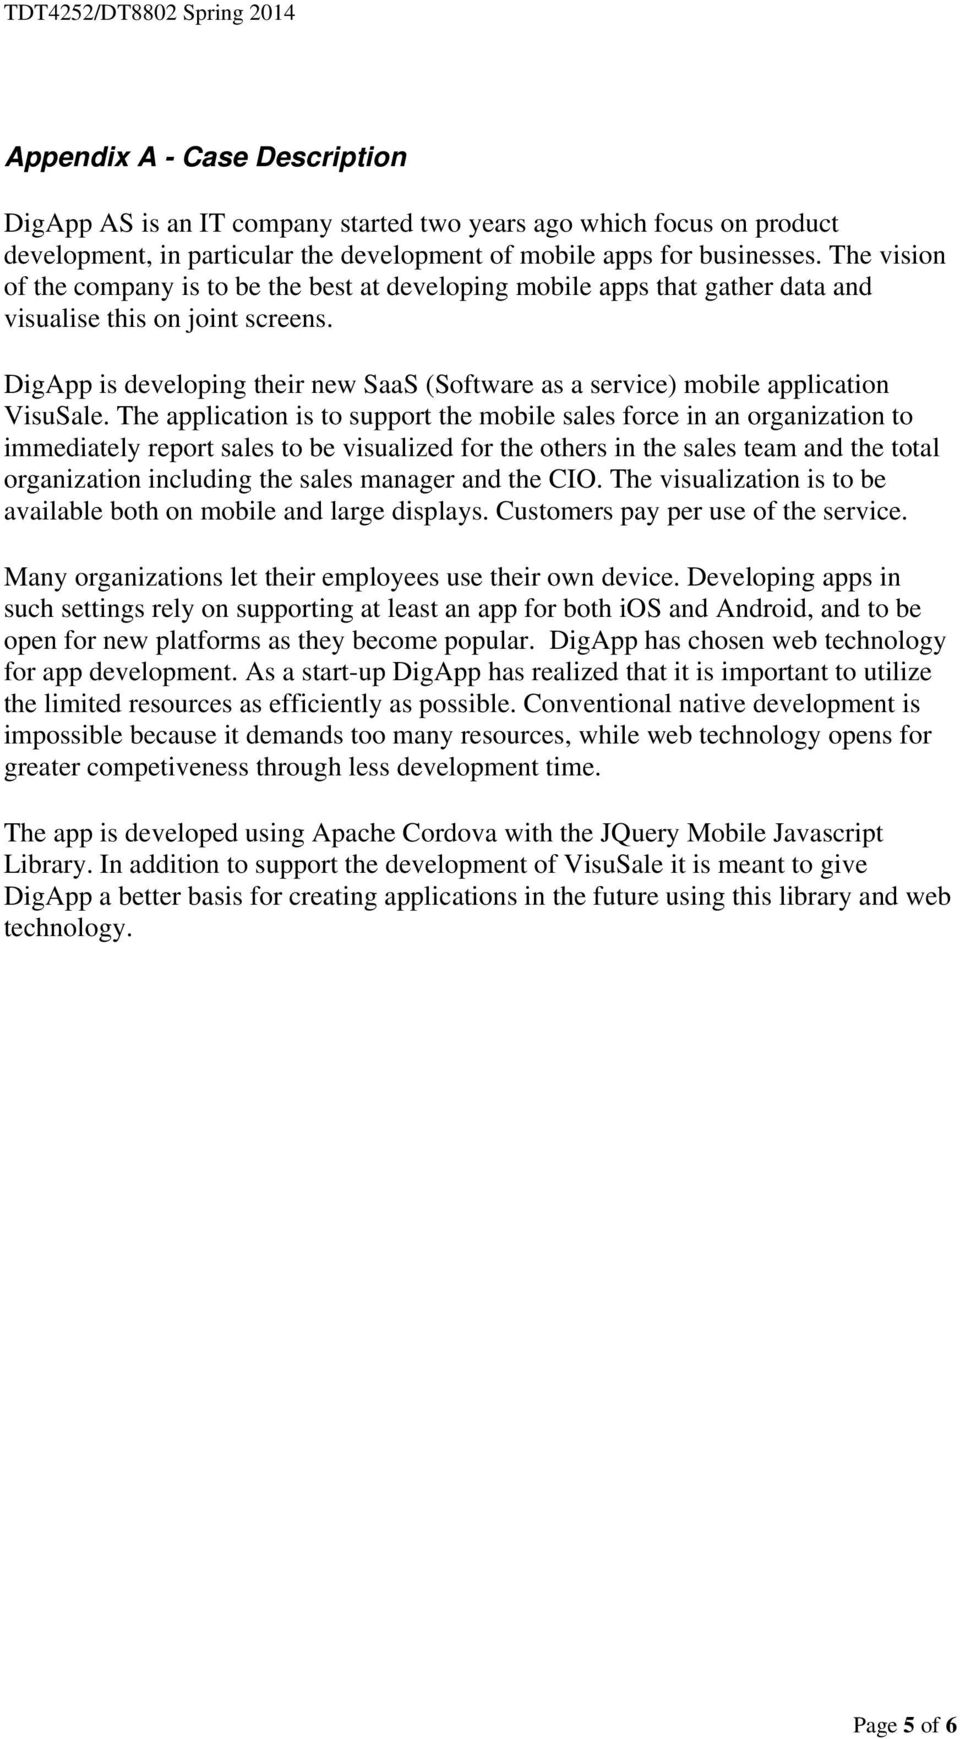 DigApp is developing their new SaaS (Software as a service) mobile application VisuSale.